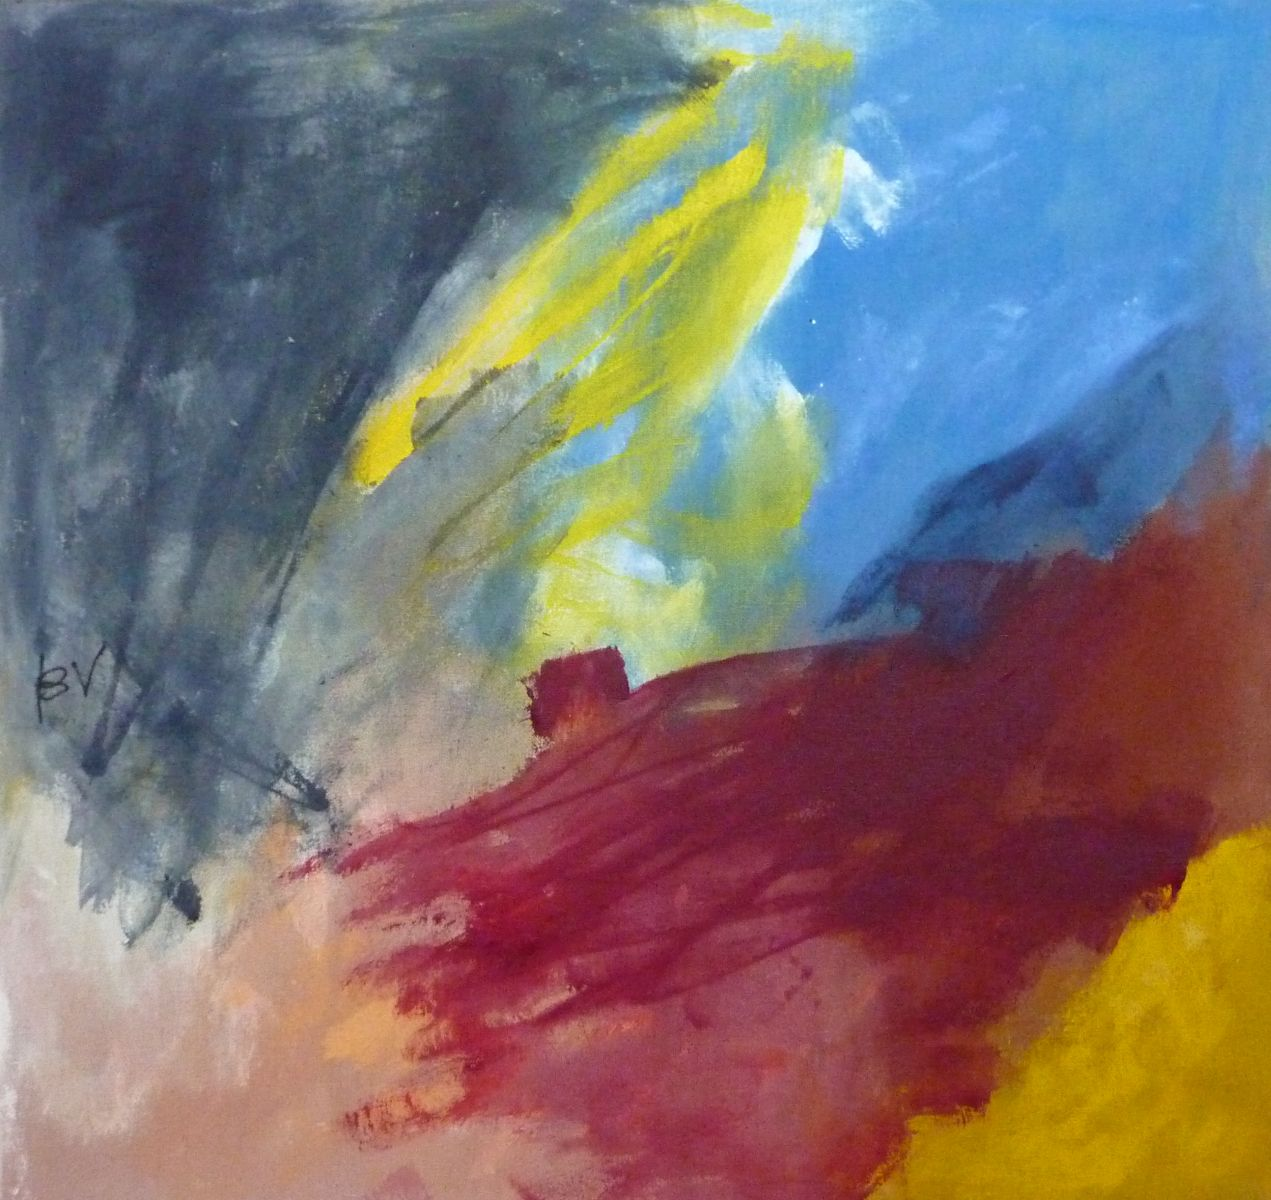 Lyrisch abstract – acryl op doek – 2010-2012